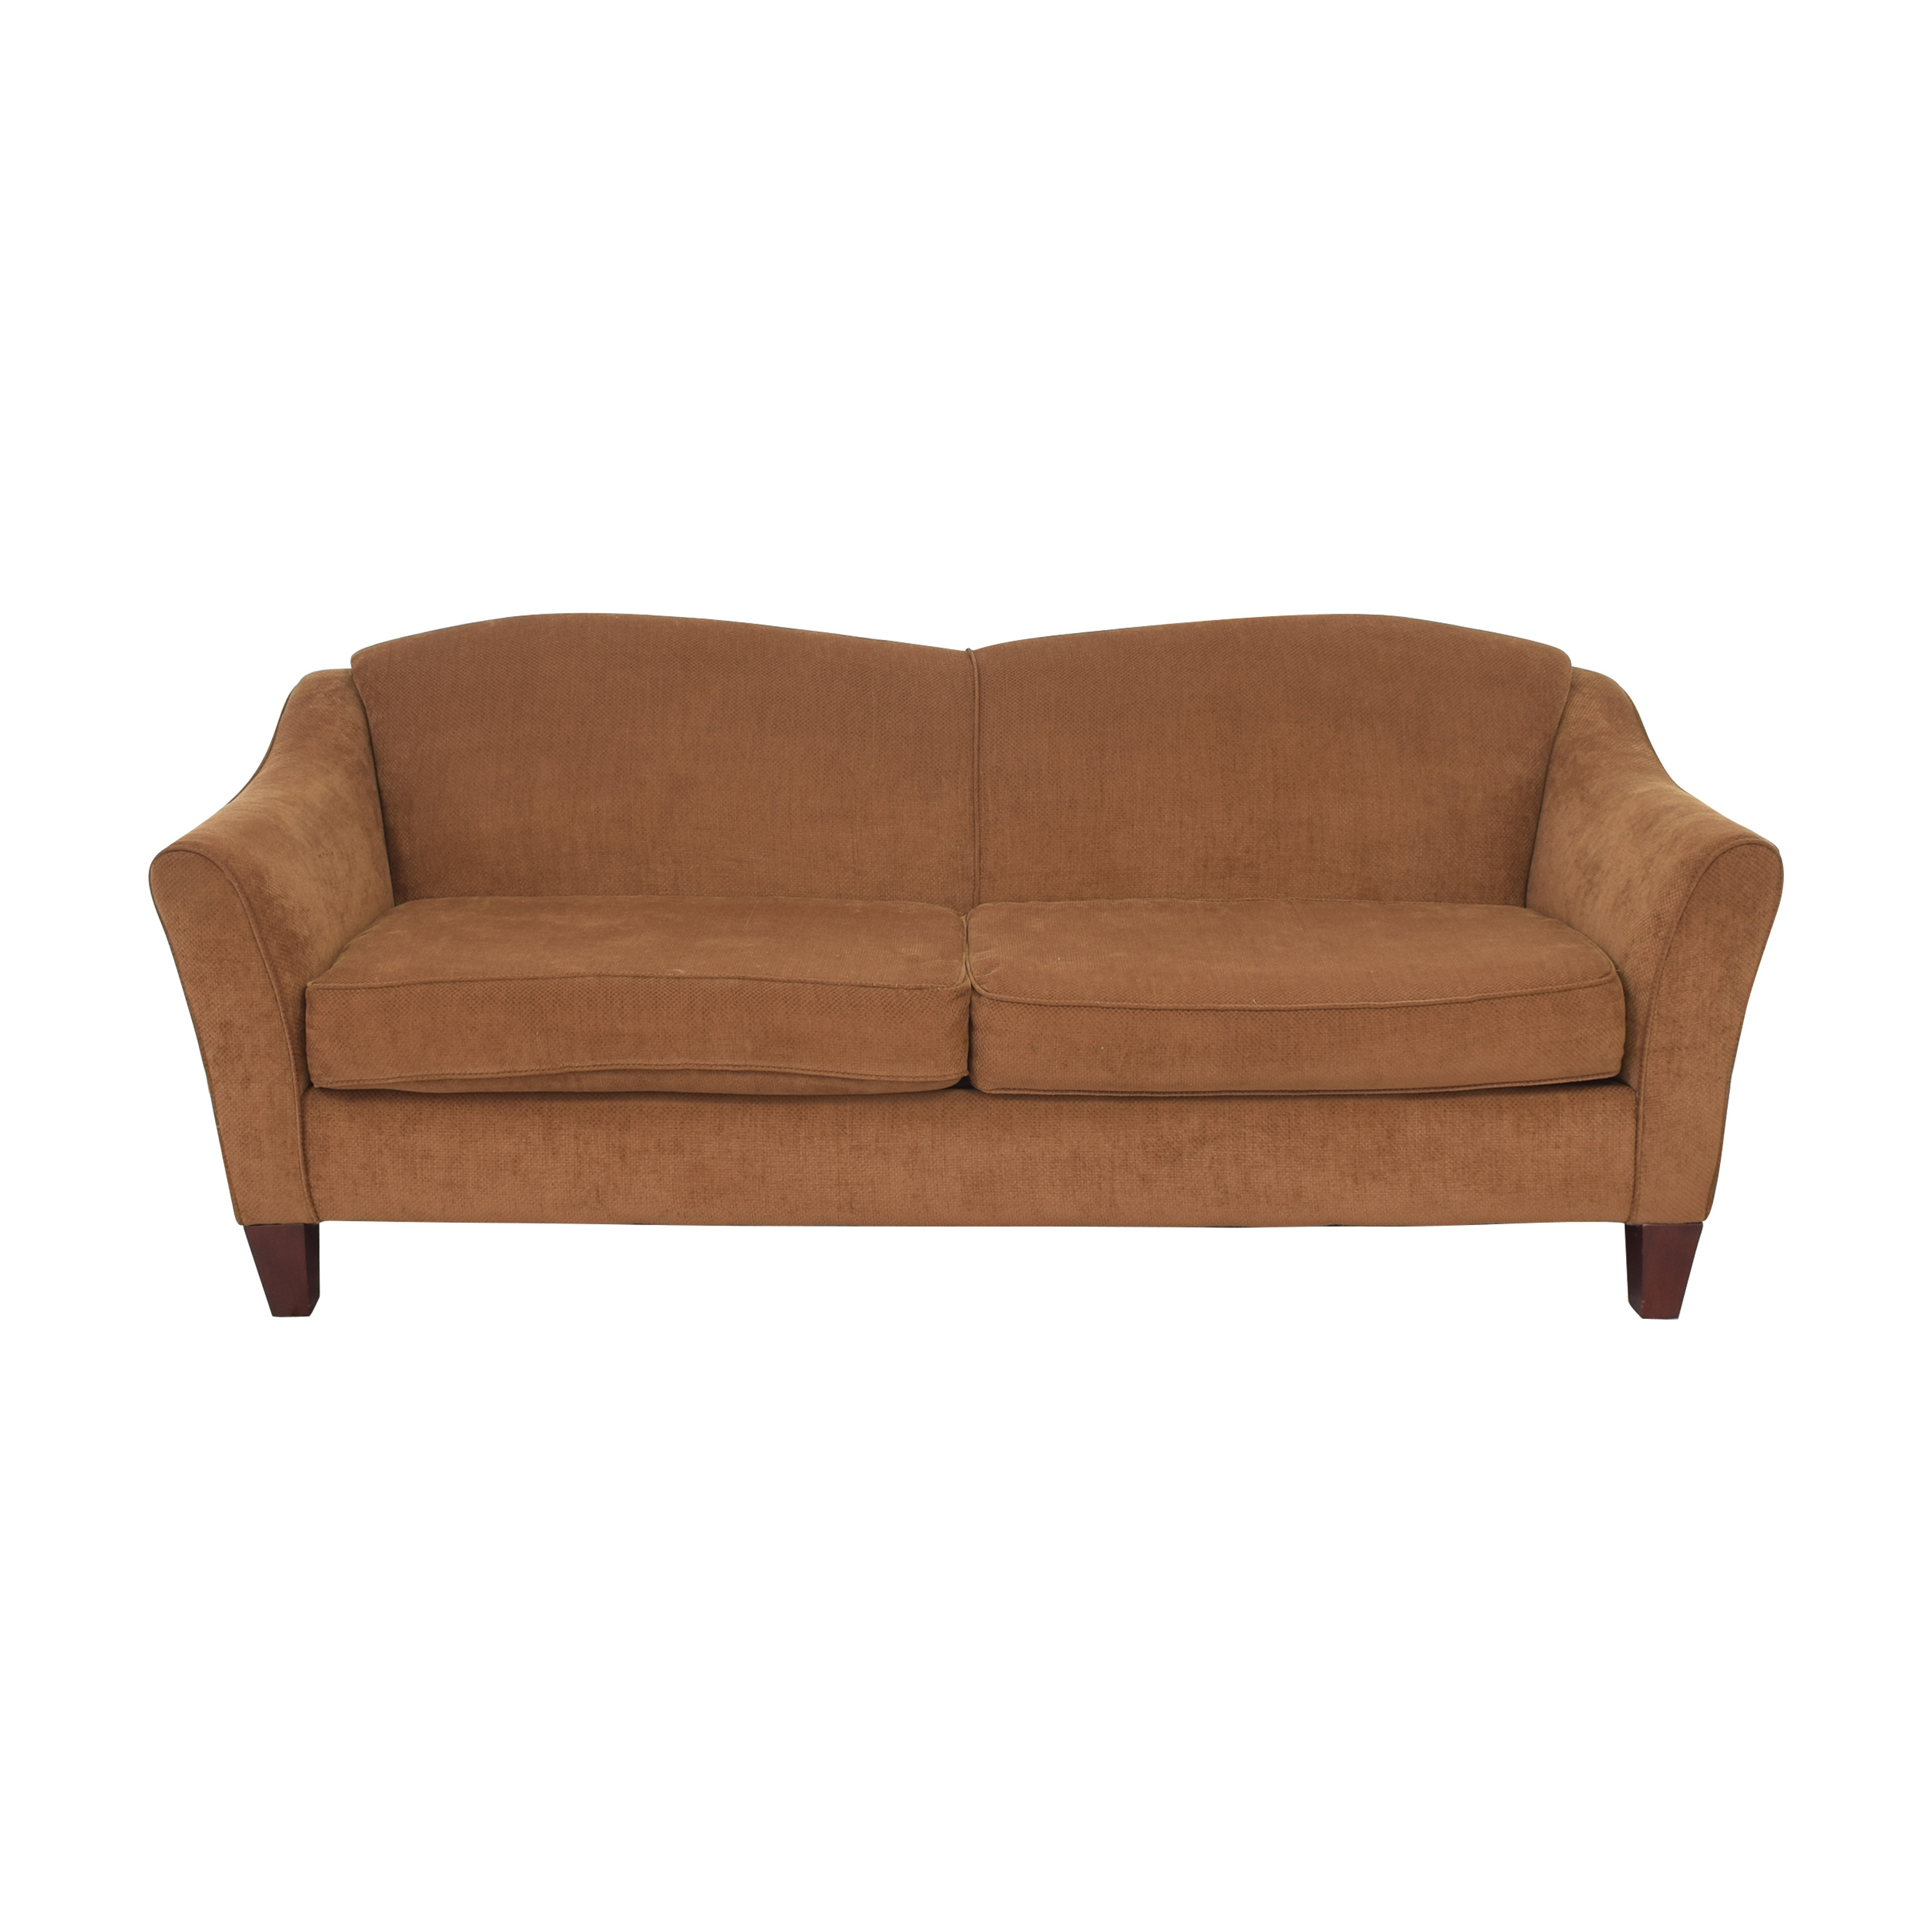 buy Klaussner Two Cushion Sofa Klaussner Classic Sofas